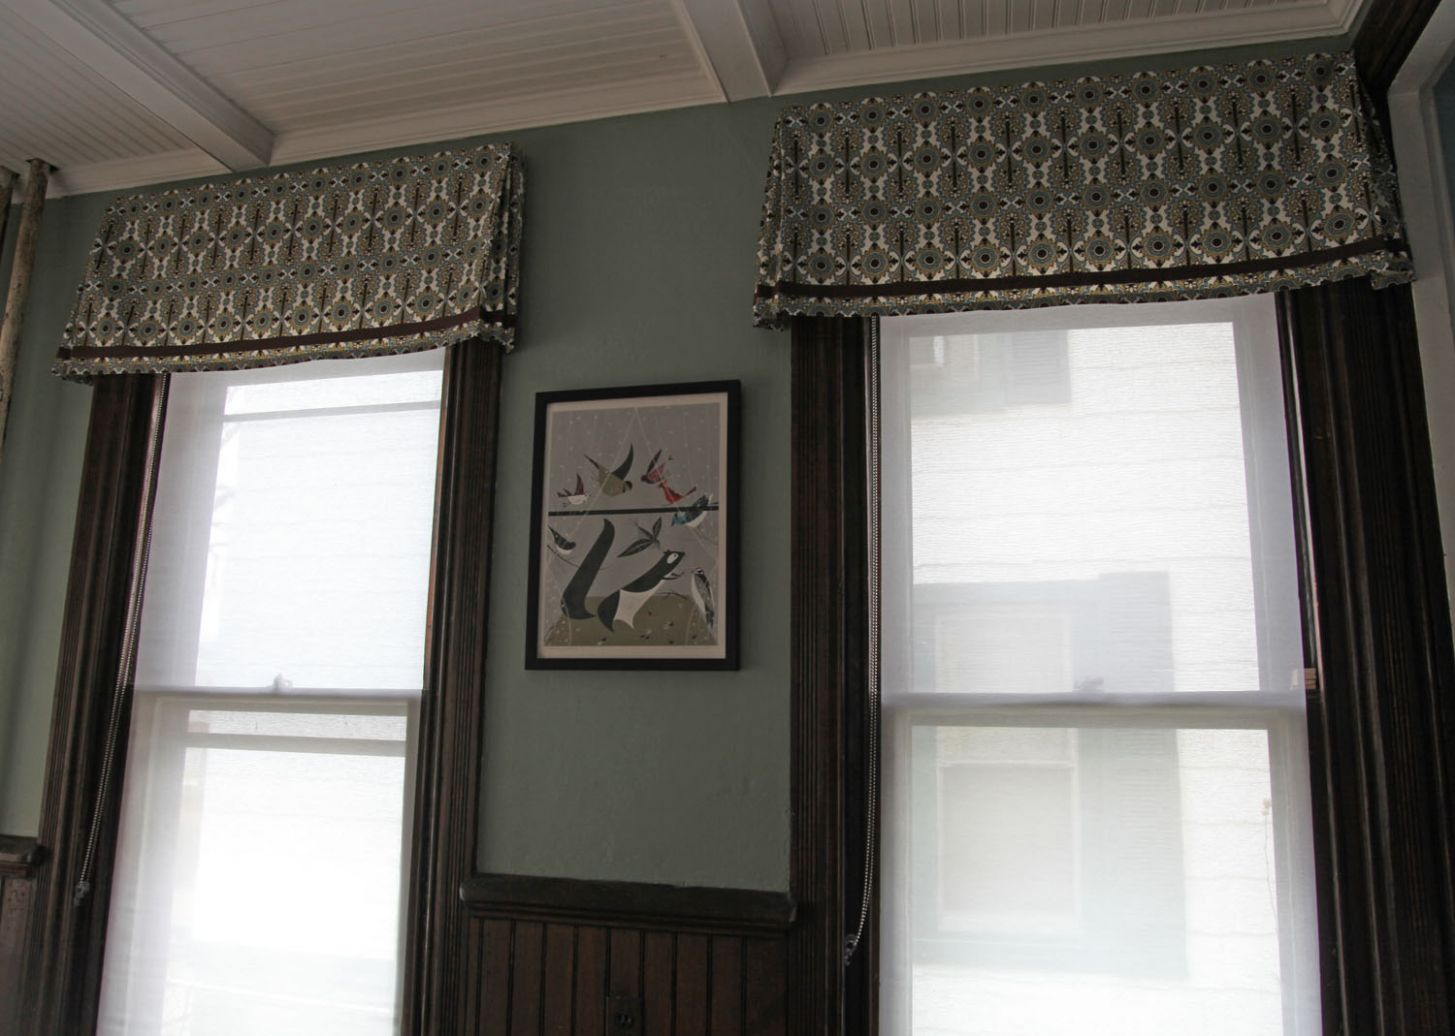 The Dining Room Windows: The Valances | Stately Kitsch - window valance ideas for dining room